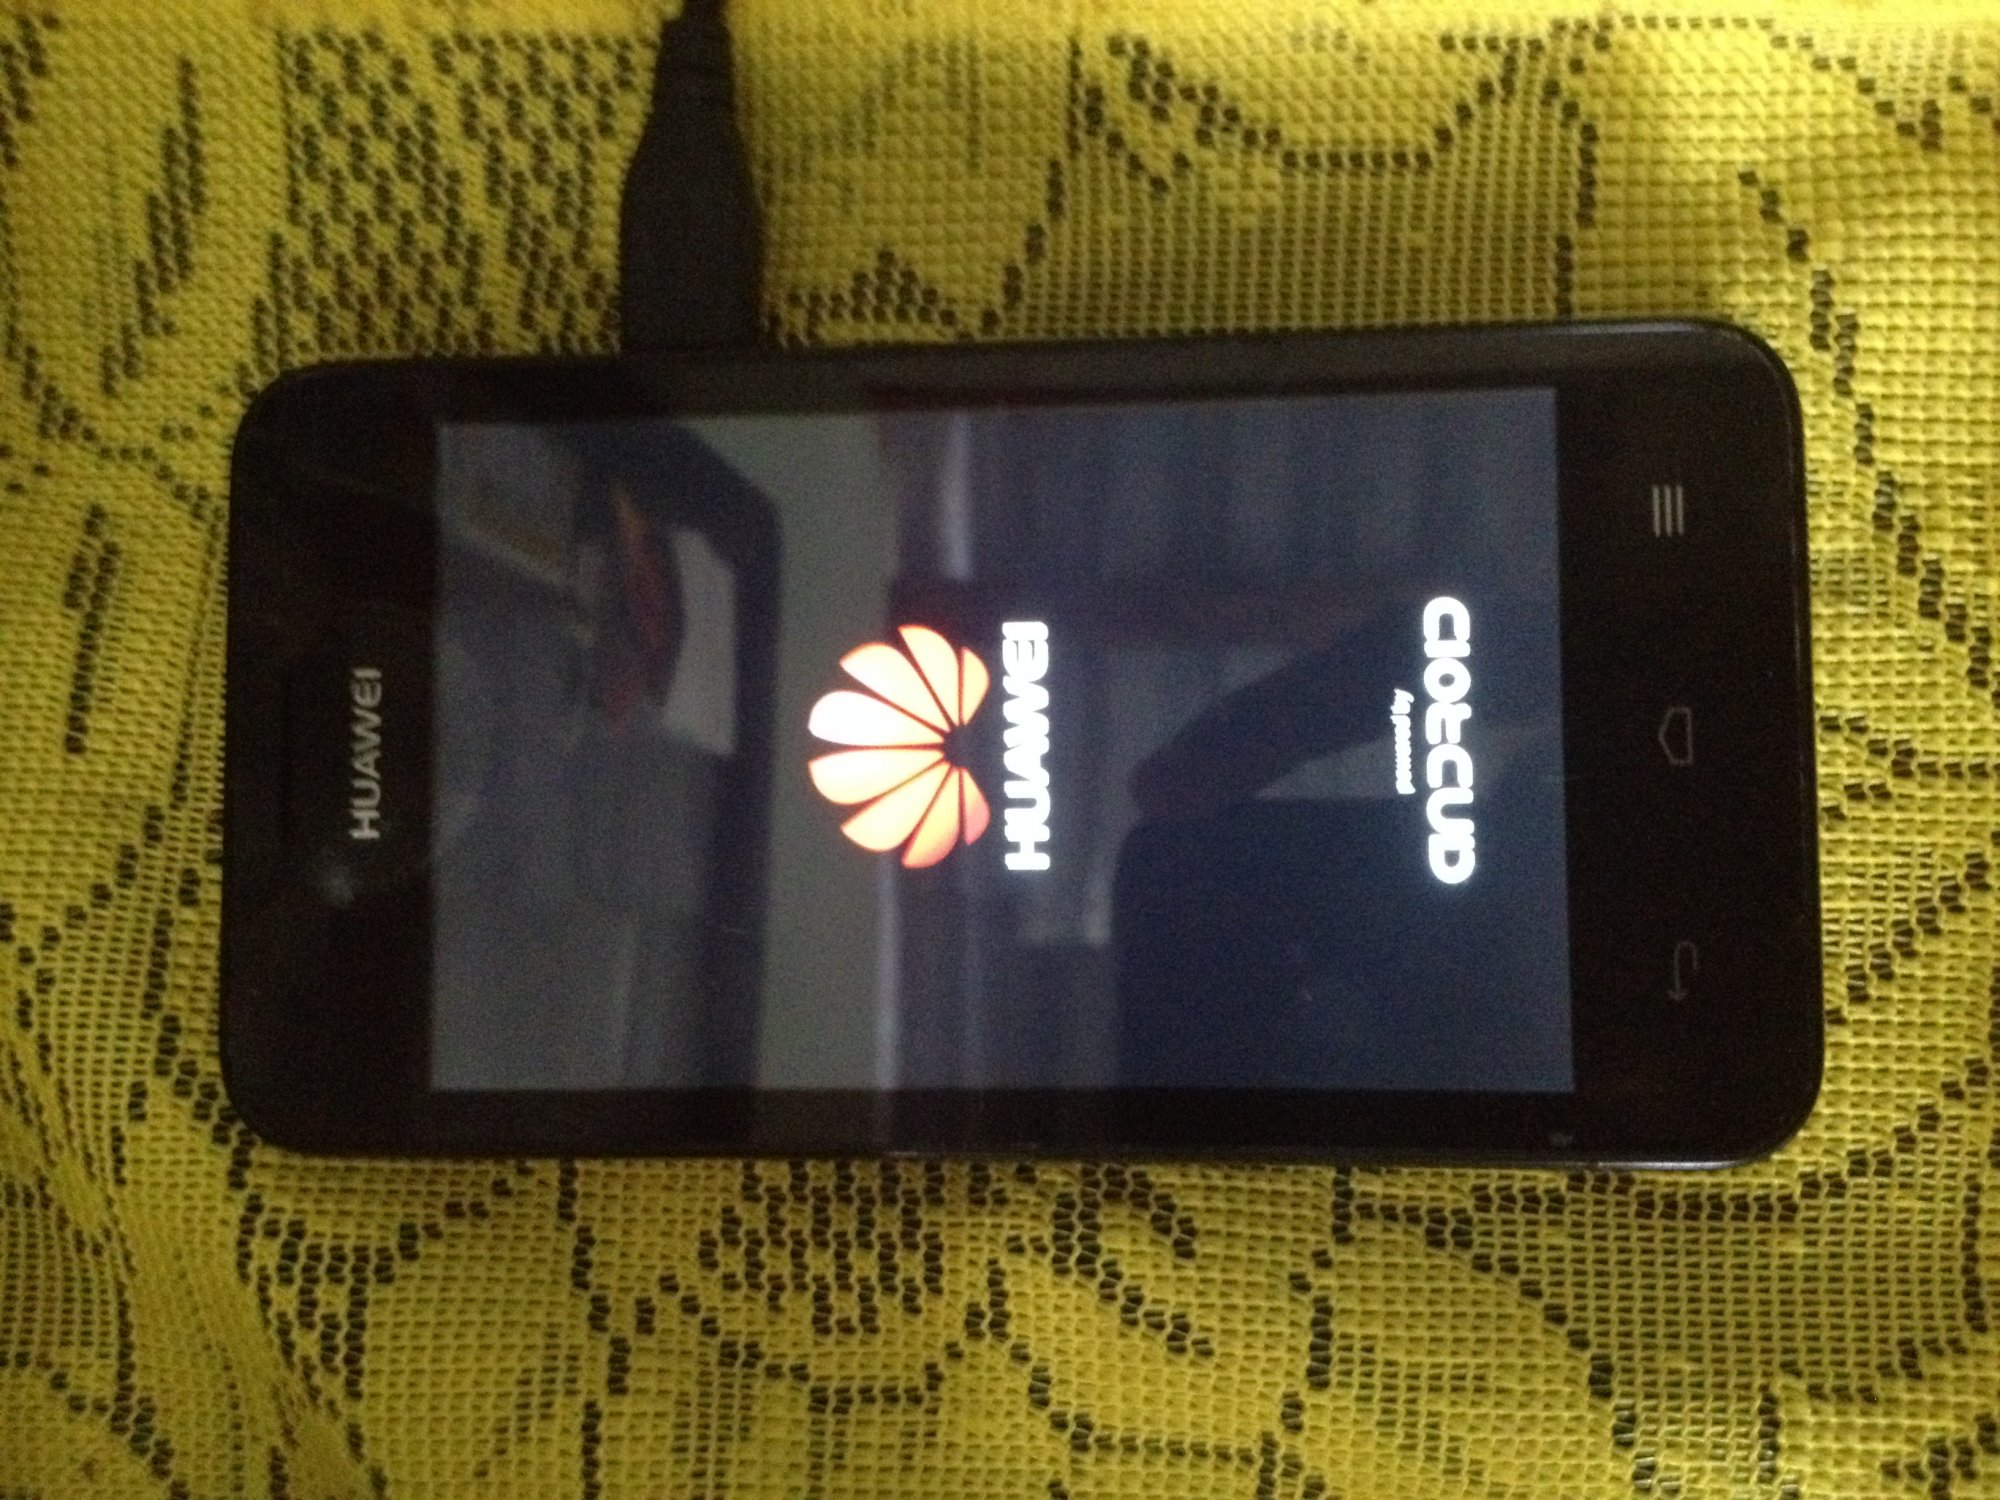 Huawei Ascend Y330-U05 stuck in boot loop and won't go into recovery